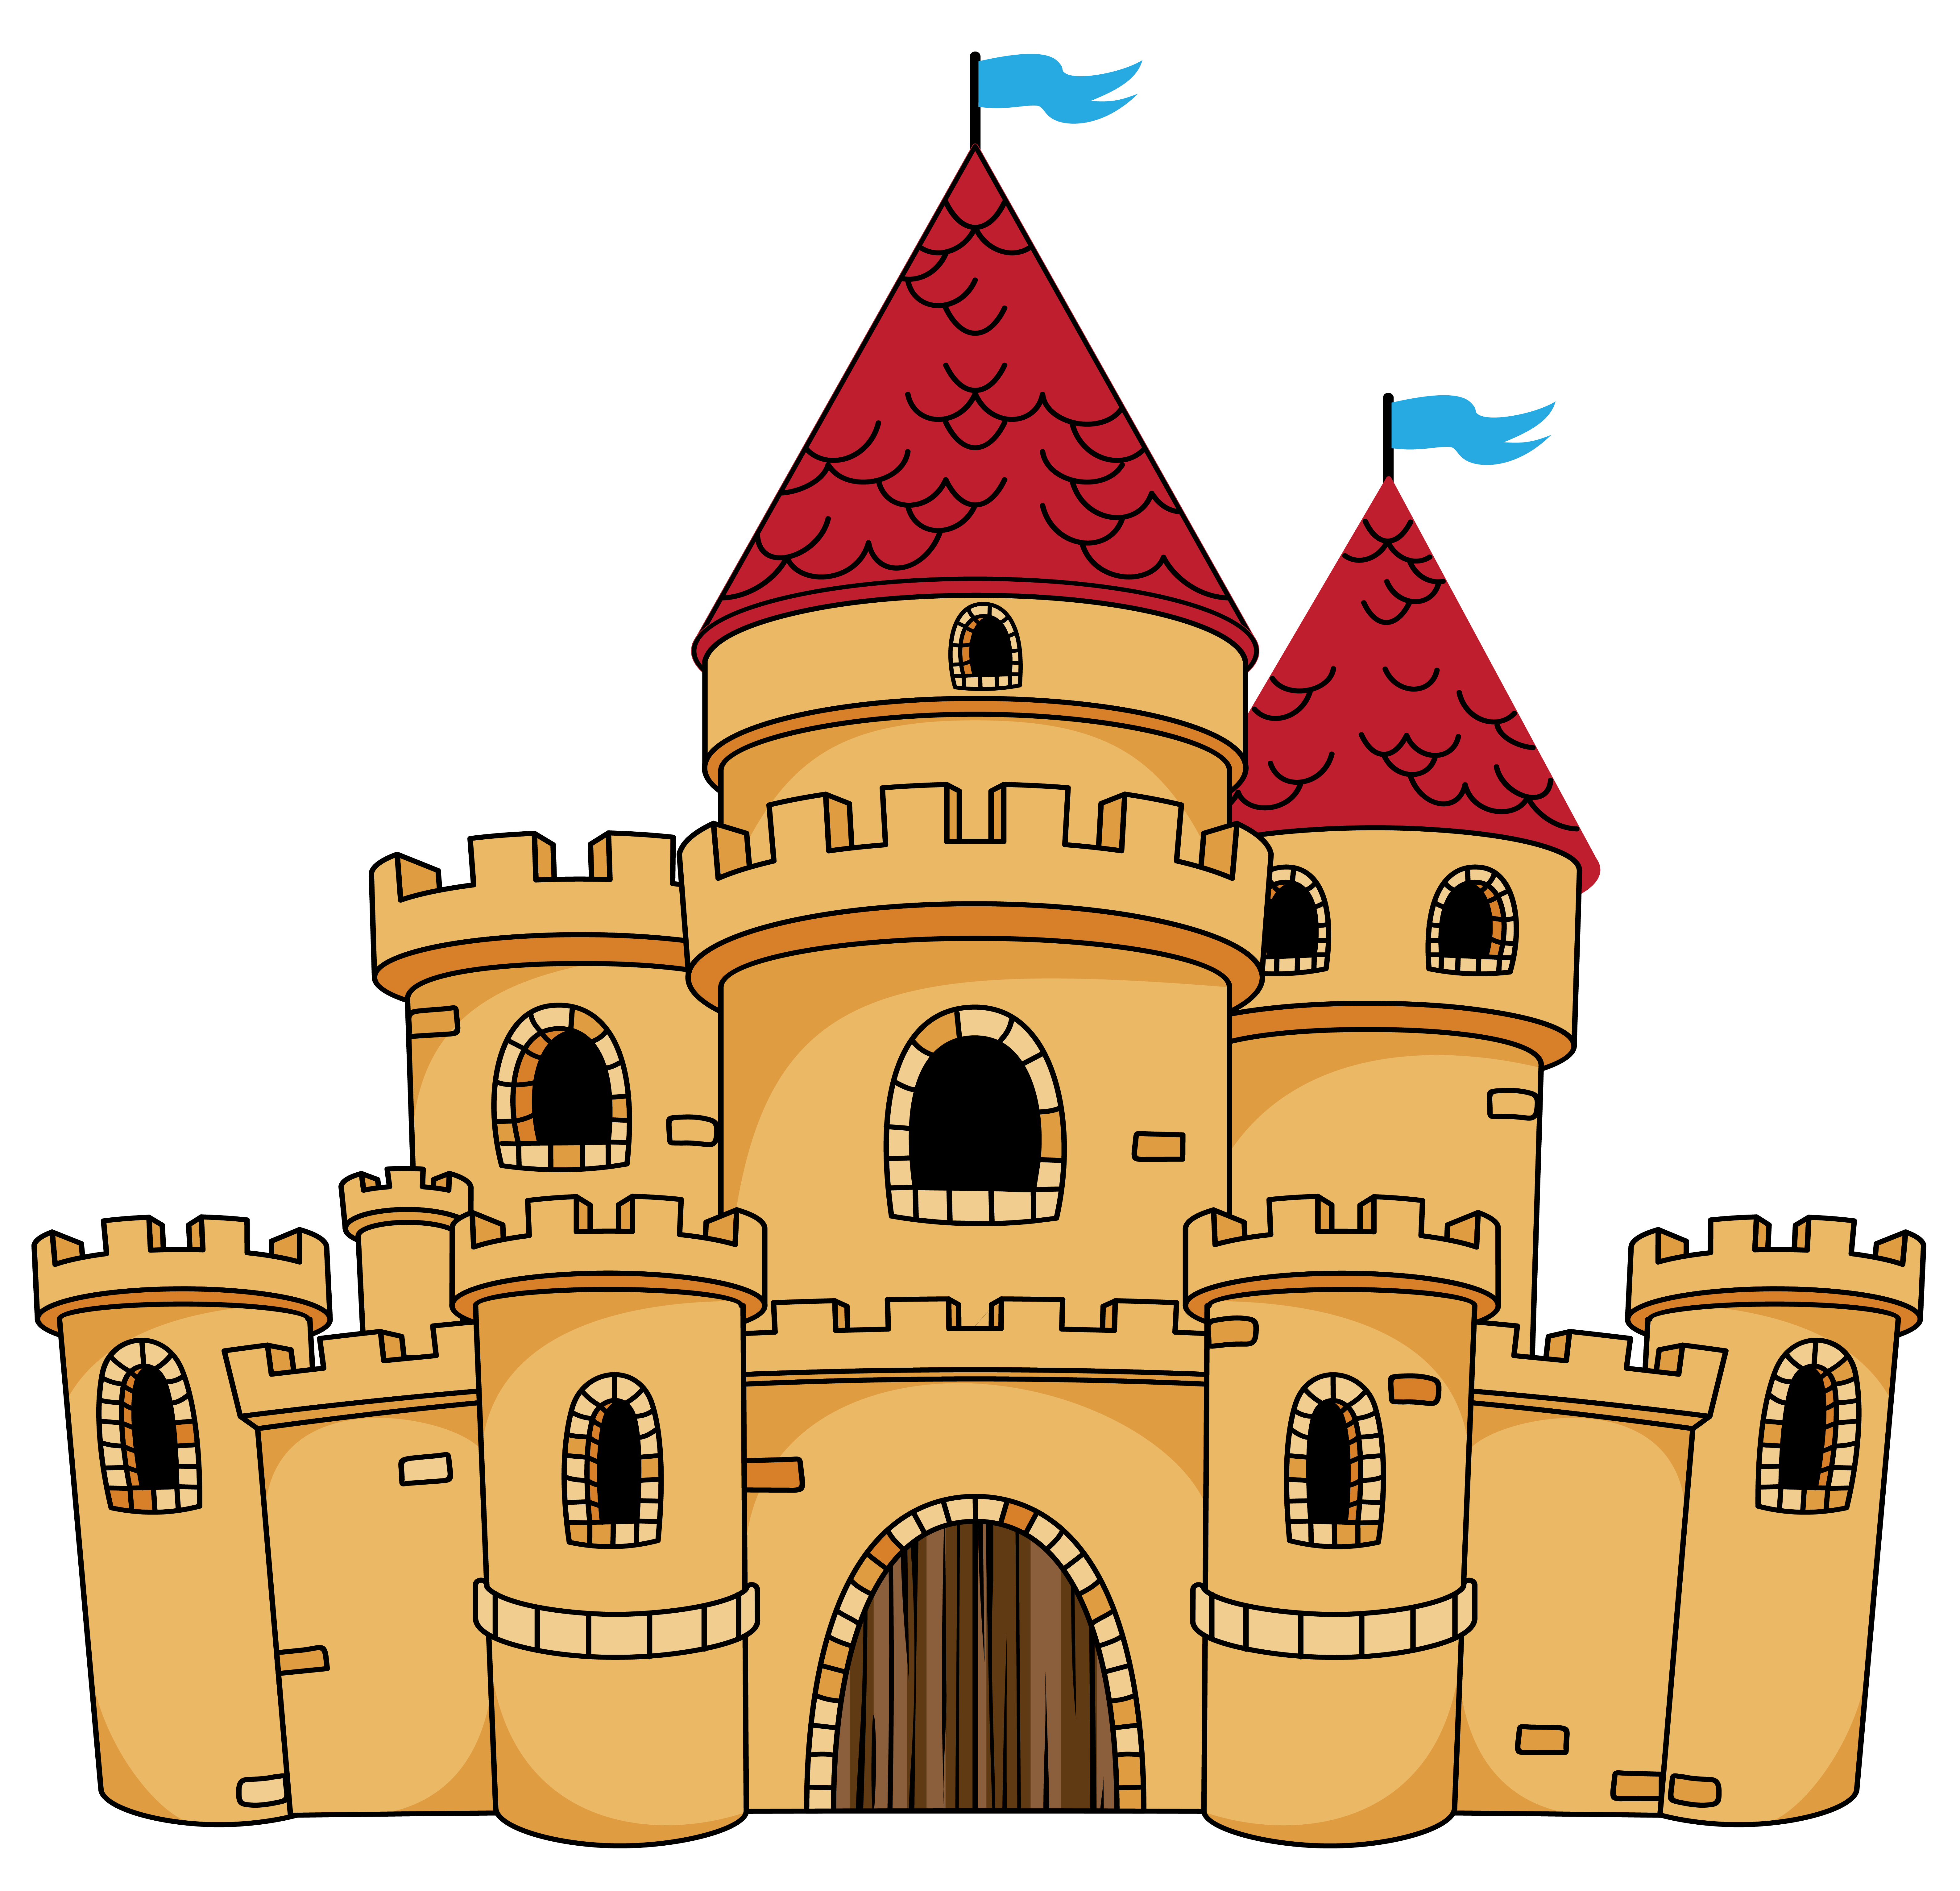 Pin by Priscilla Lang Studer on Clip Art | Castle, Castle crafts ... clip art library